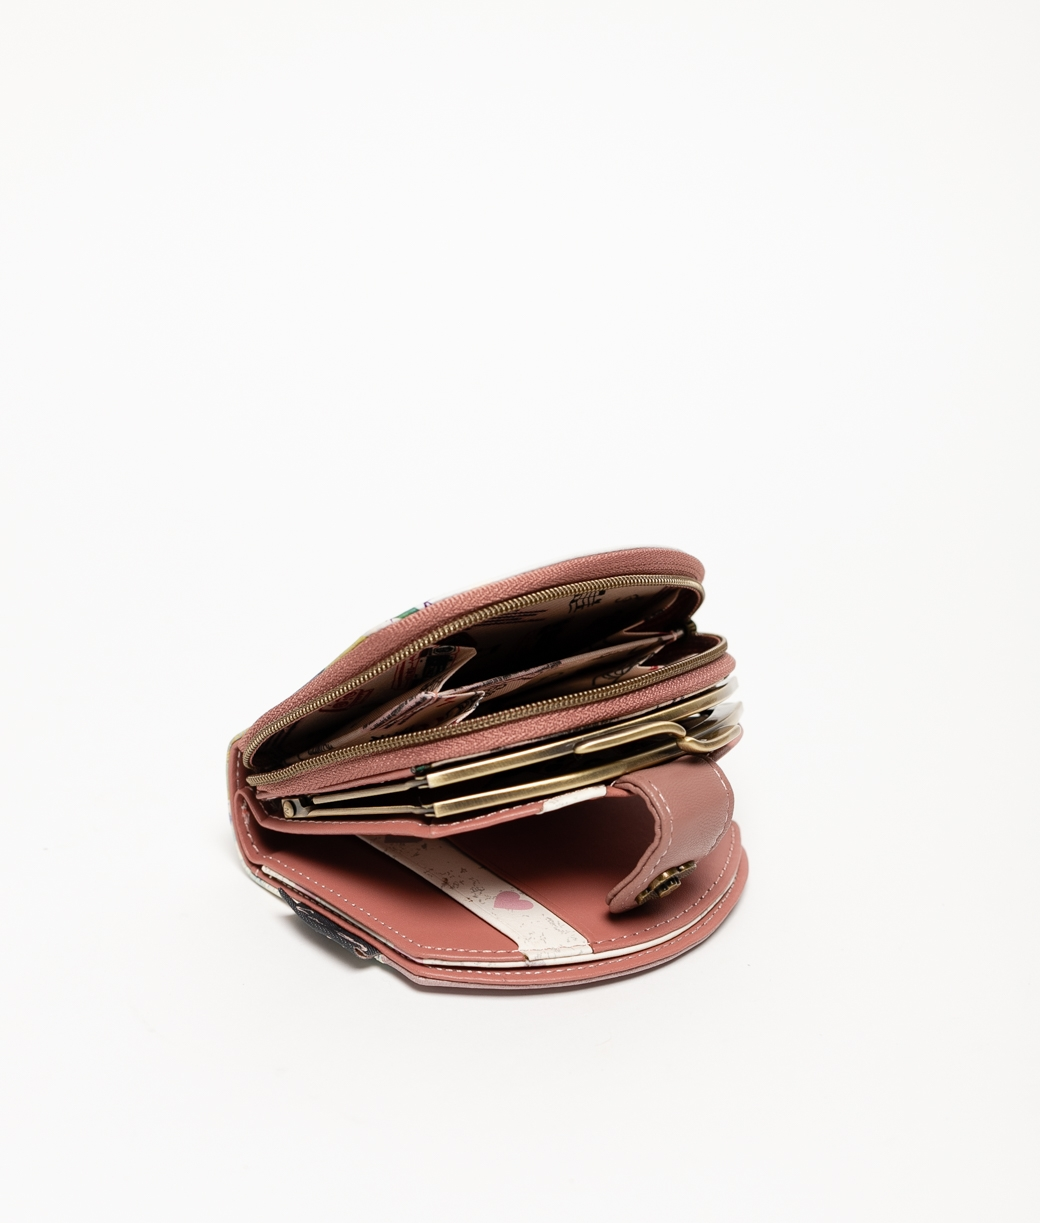 Canada Sweet Candy Wallet - A